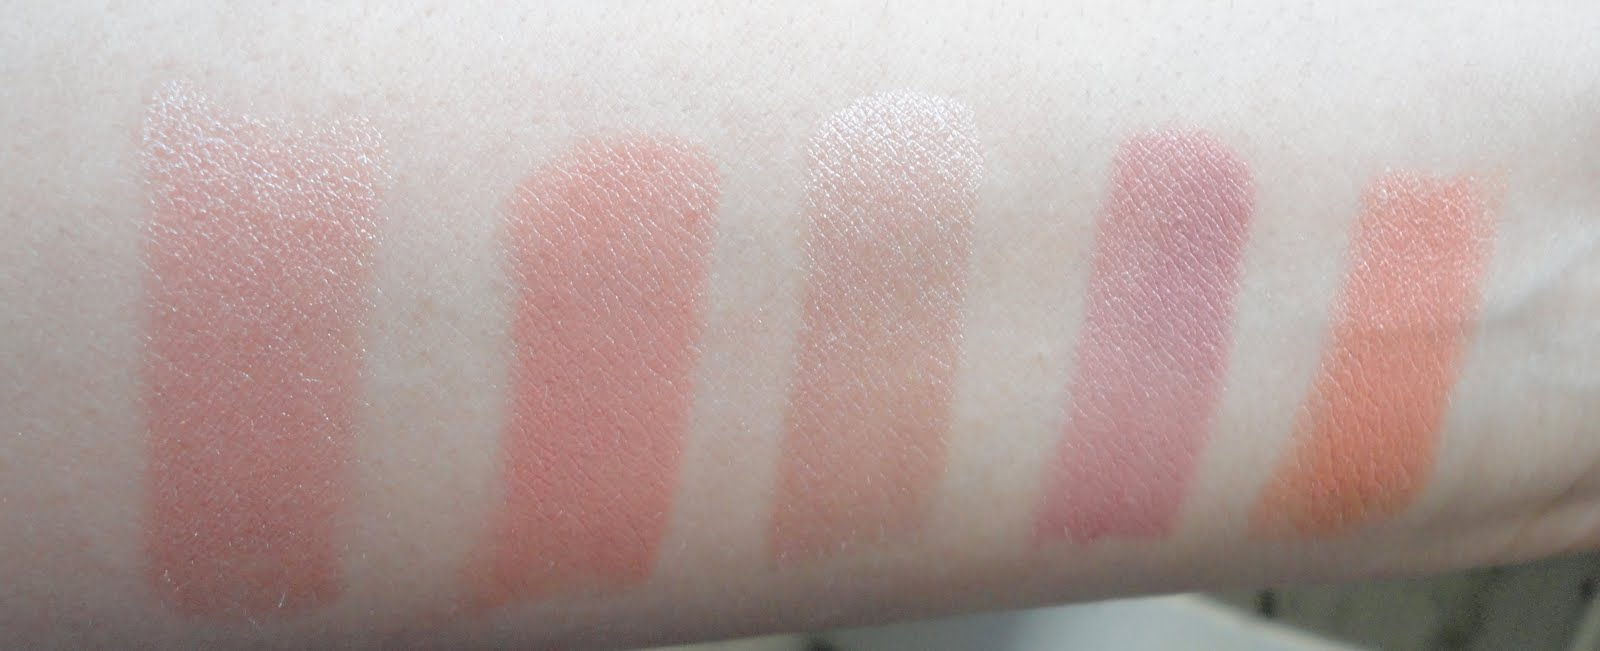 prettythings rimmel lippies swatches